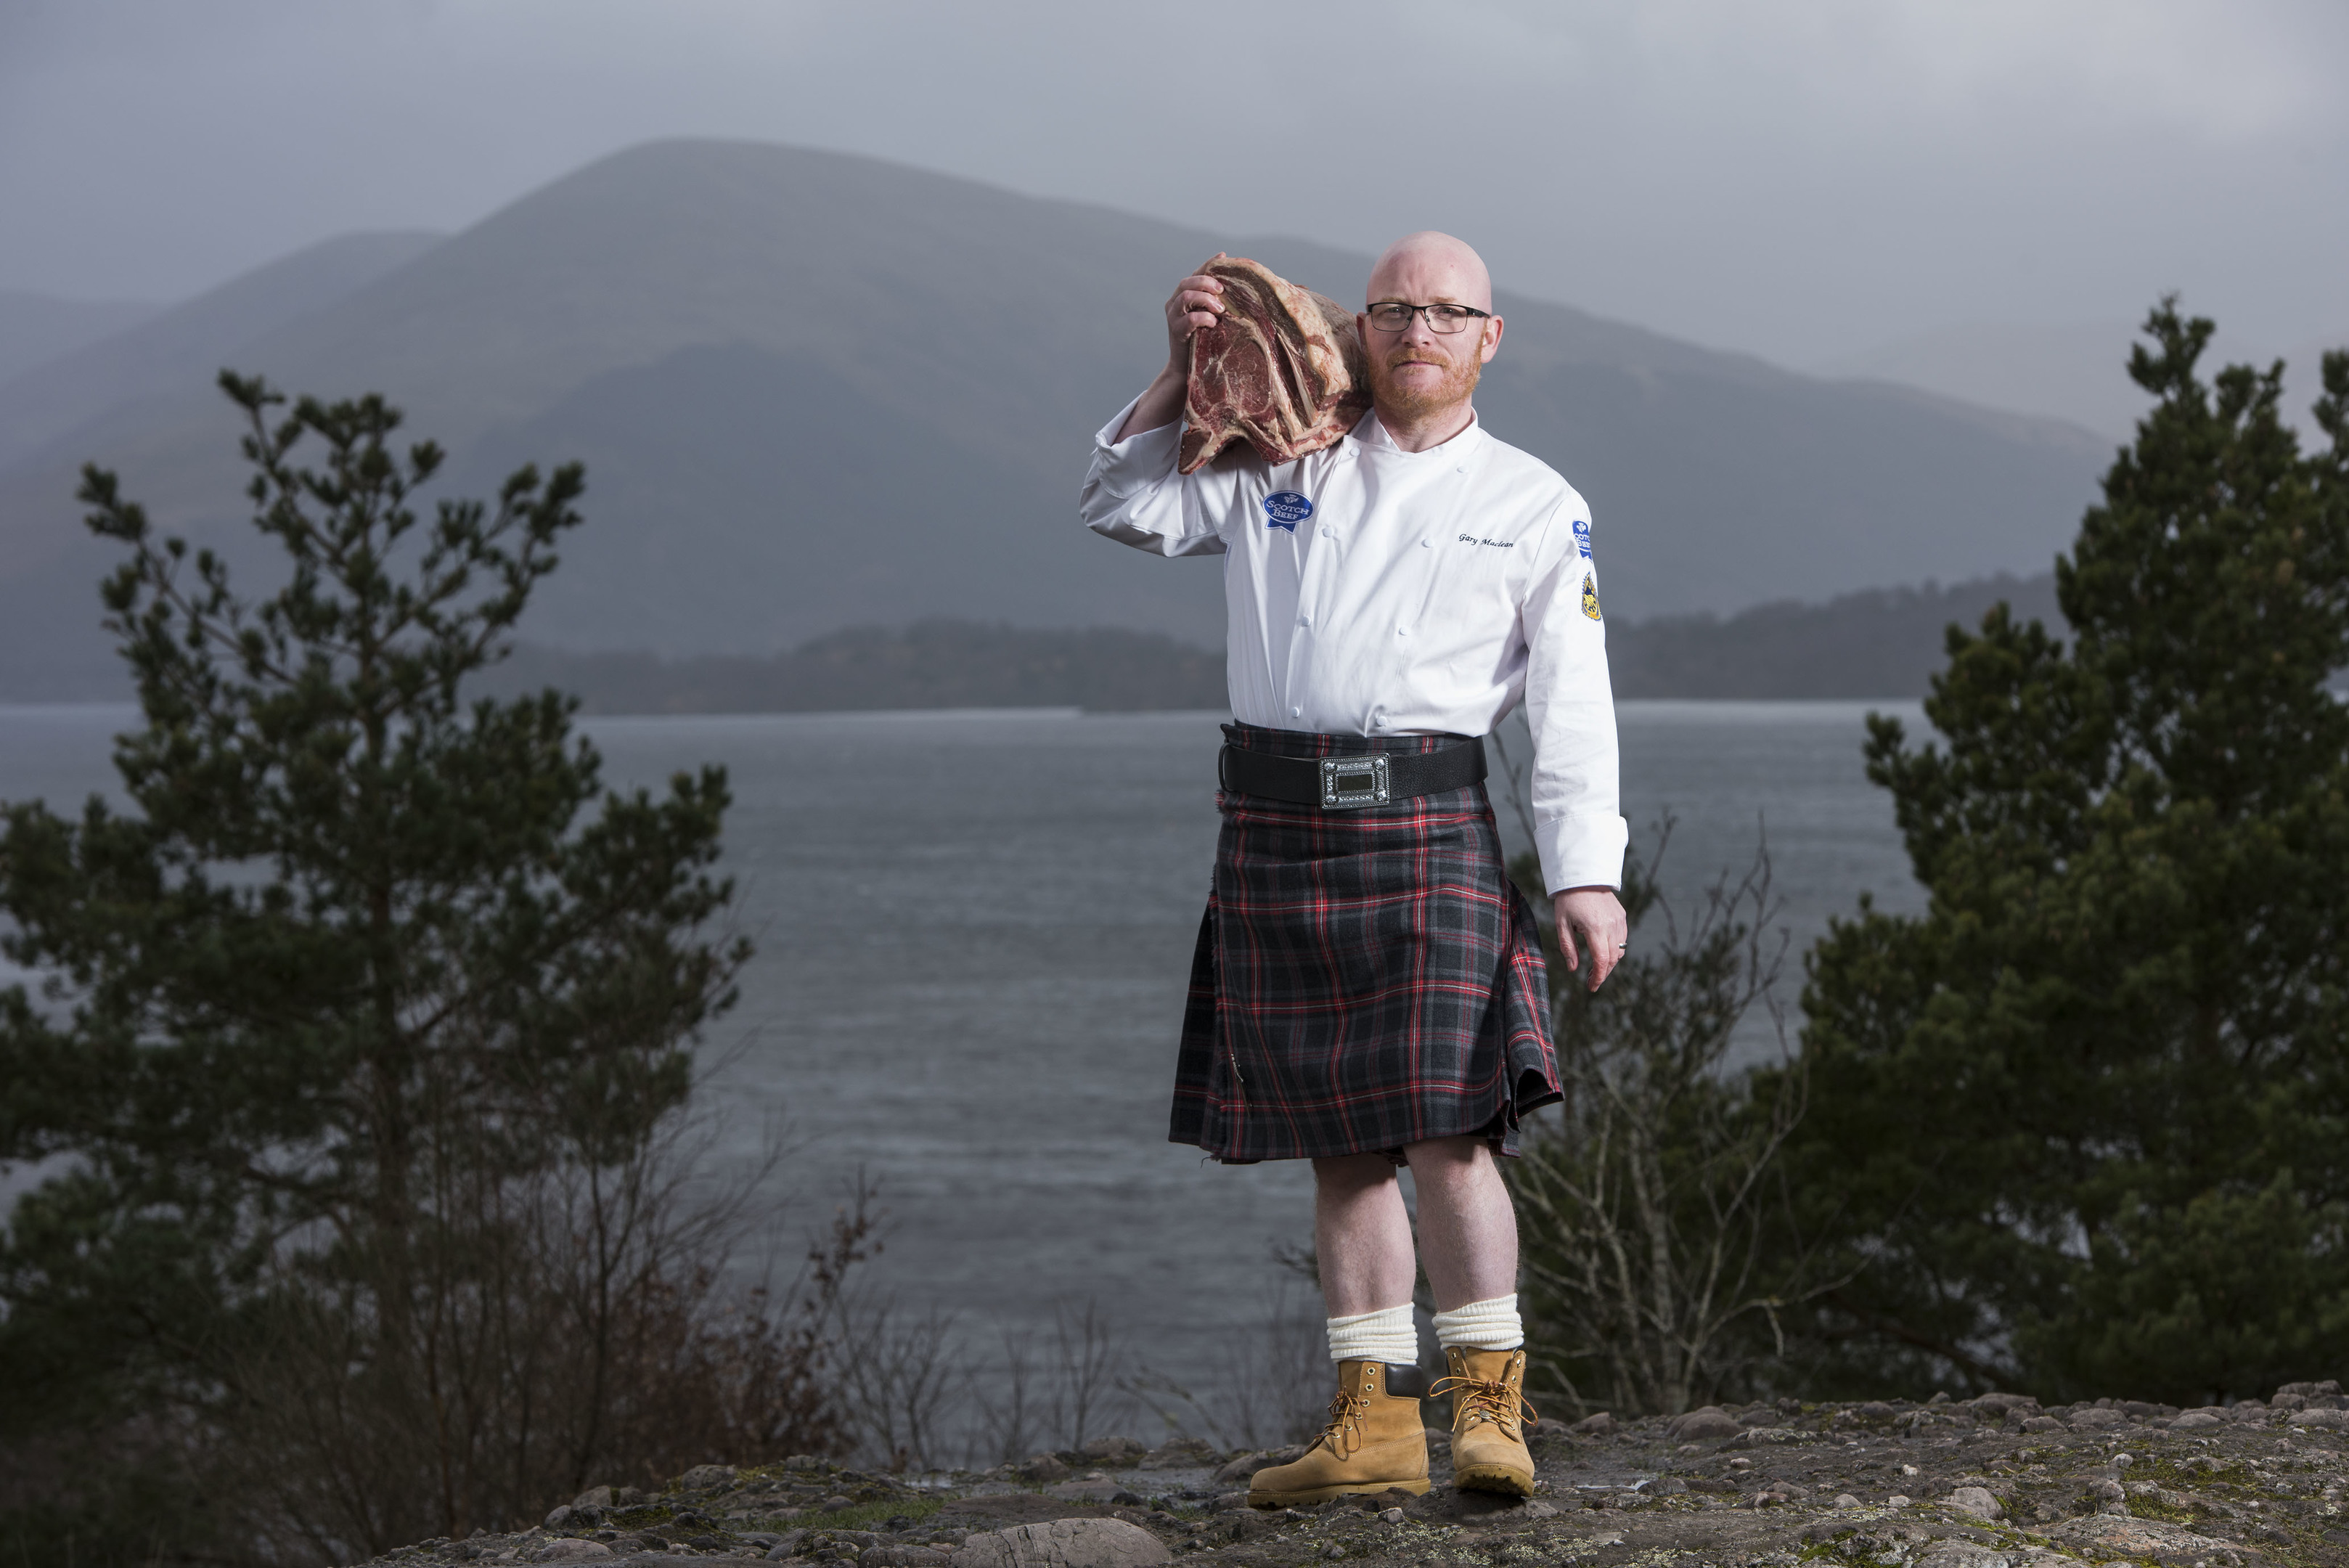 Gary Maclean launched the campaign on the banks of Loch Lomond